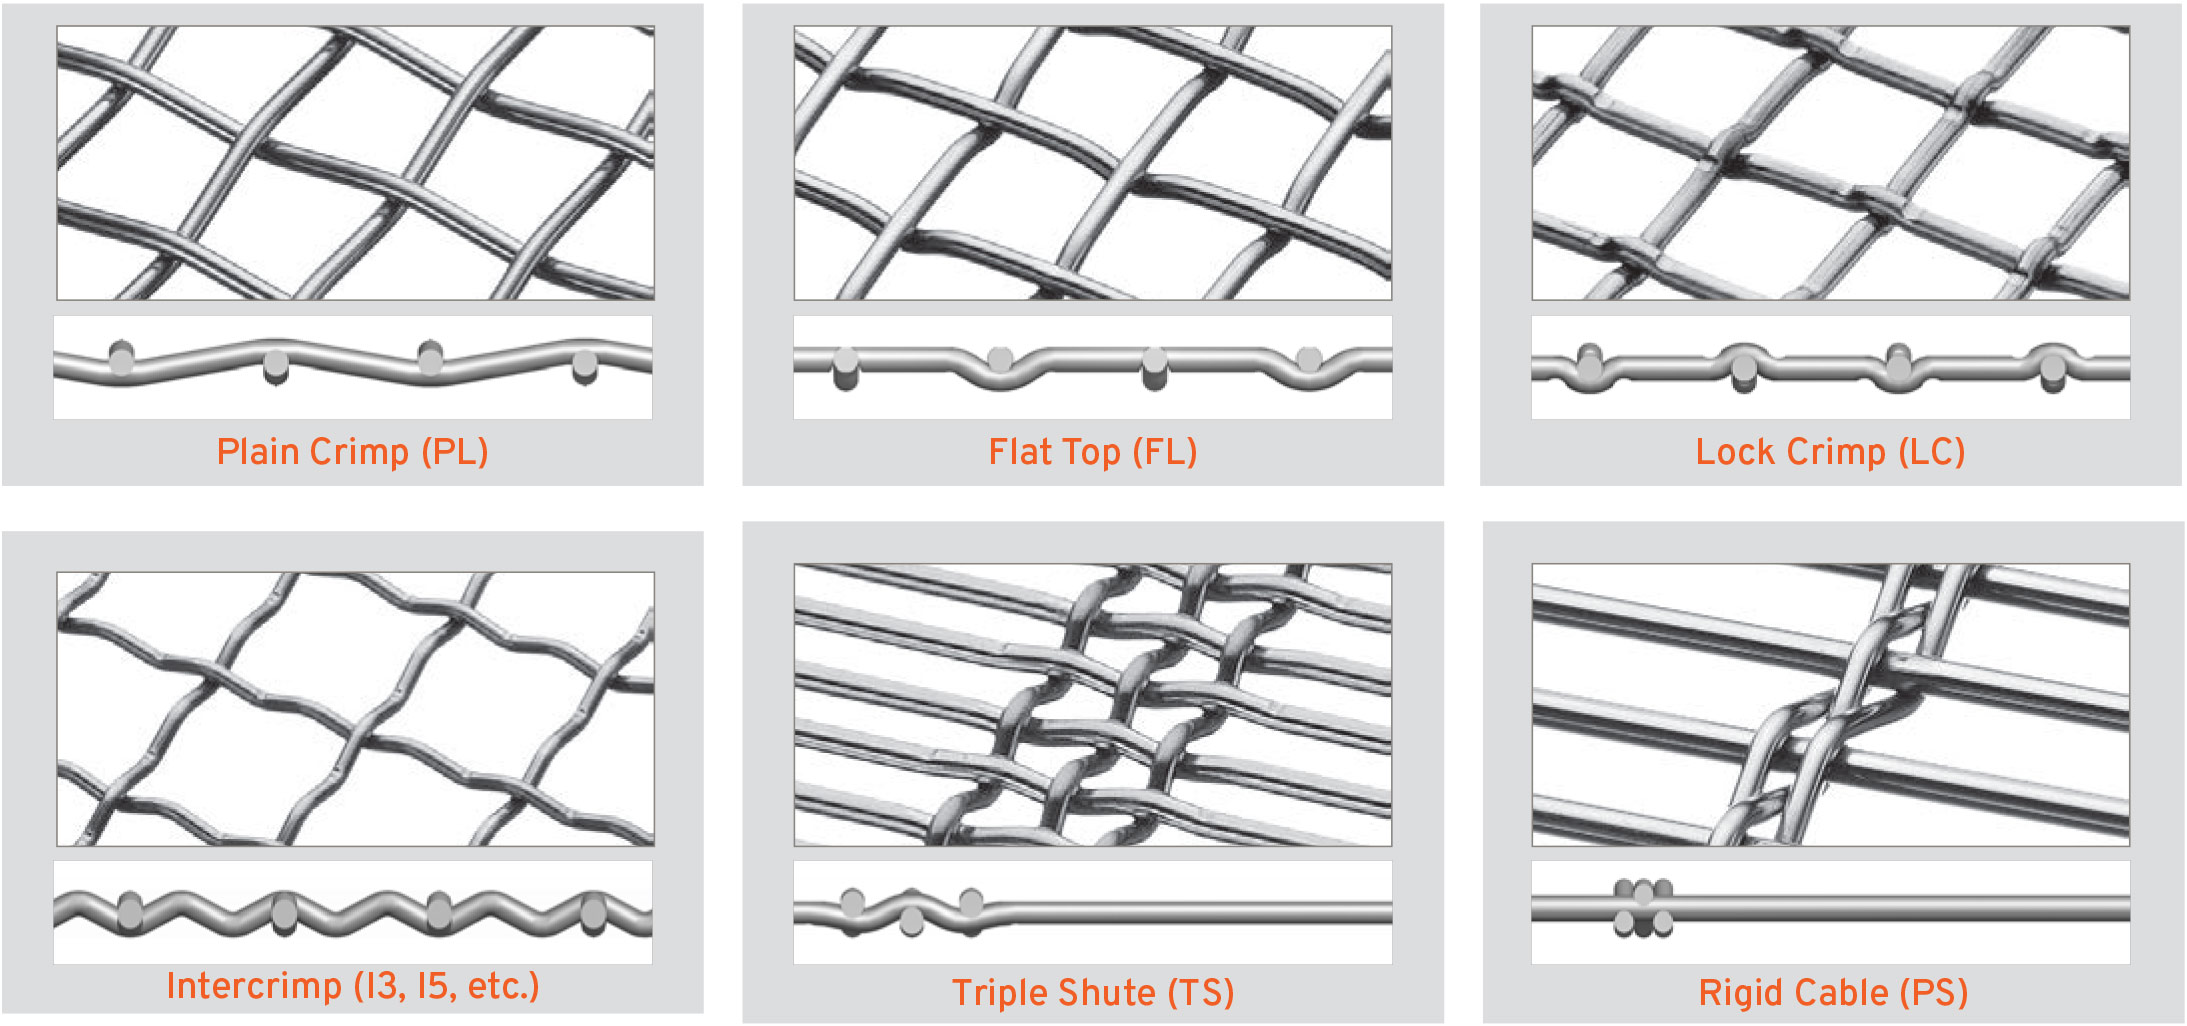 a breakdown of woven wire relationships